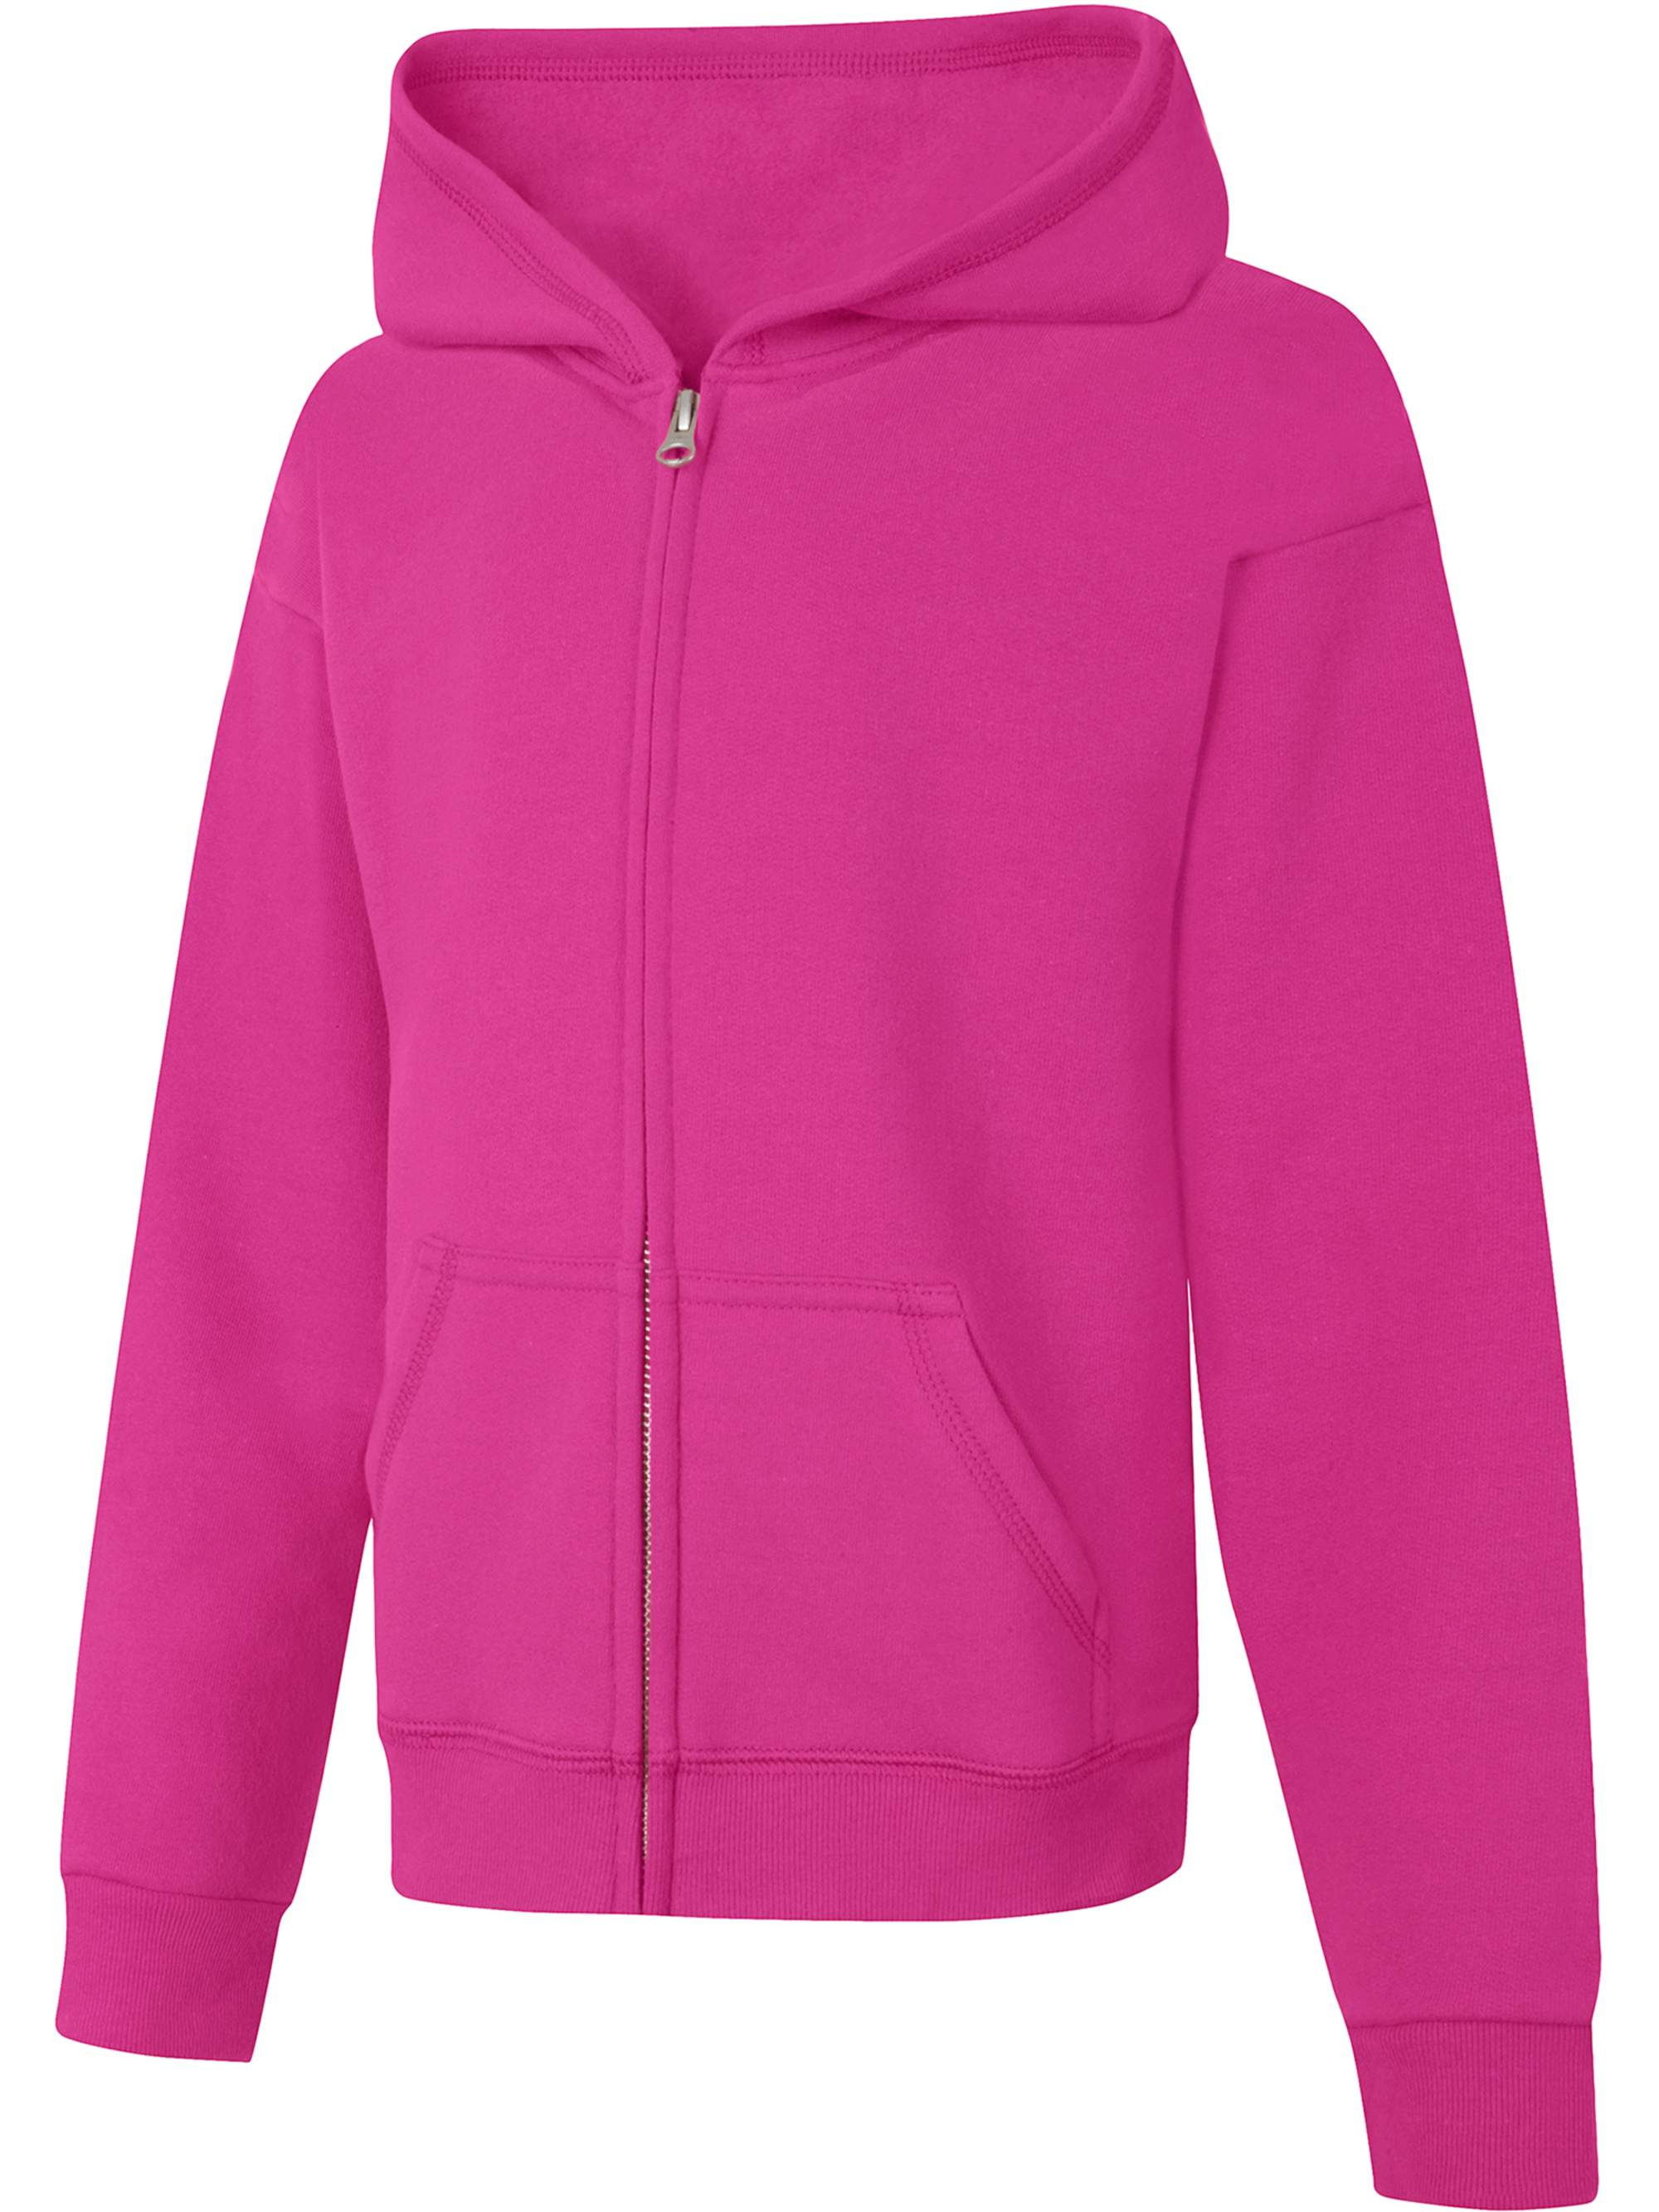 Urban Republic Big Girls Pink Solid Color Plush Soft Zippered Jacket 7-16